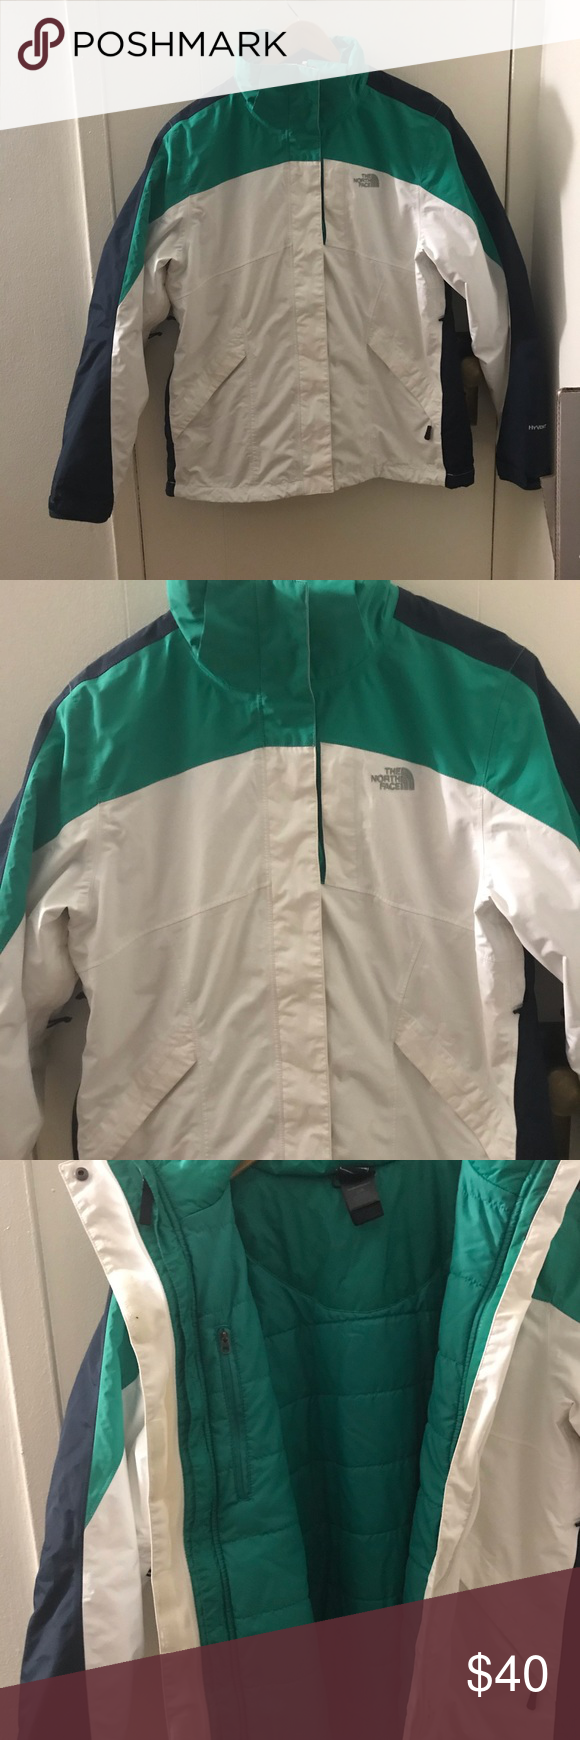 The North Face 2 In 1 Jacket Clothes Design Fashion Design Fashion Tips [ 1740 x 580 Pixel ]